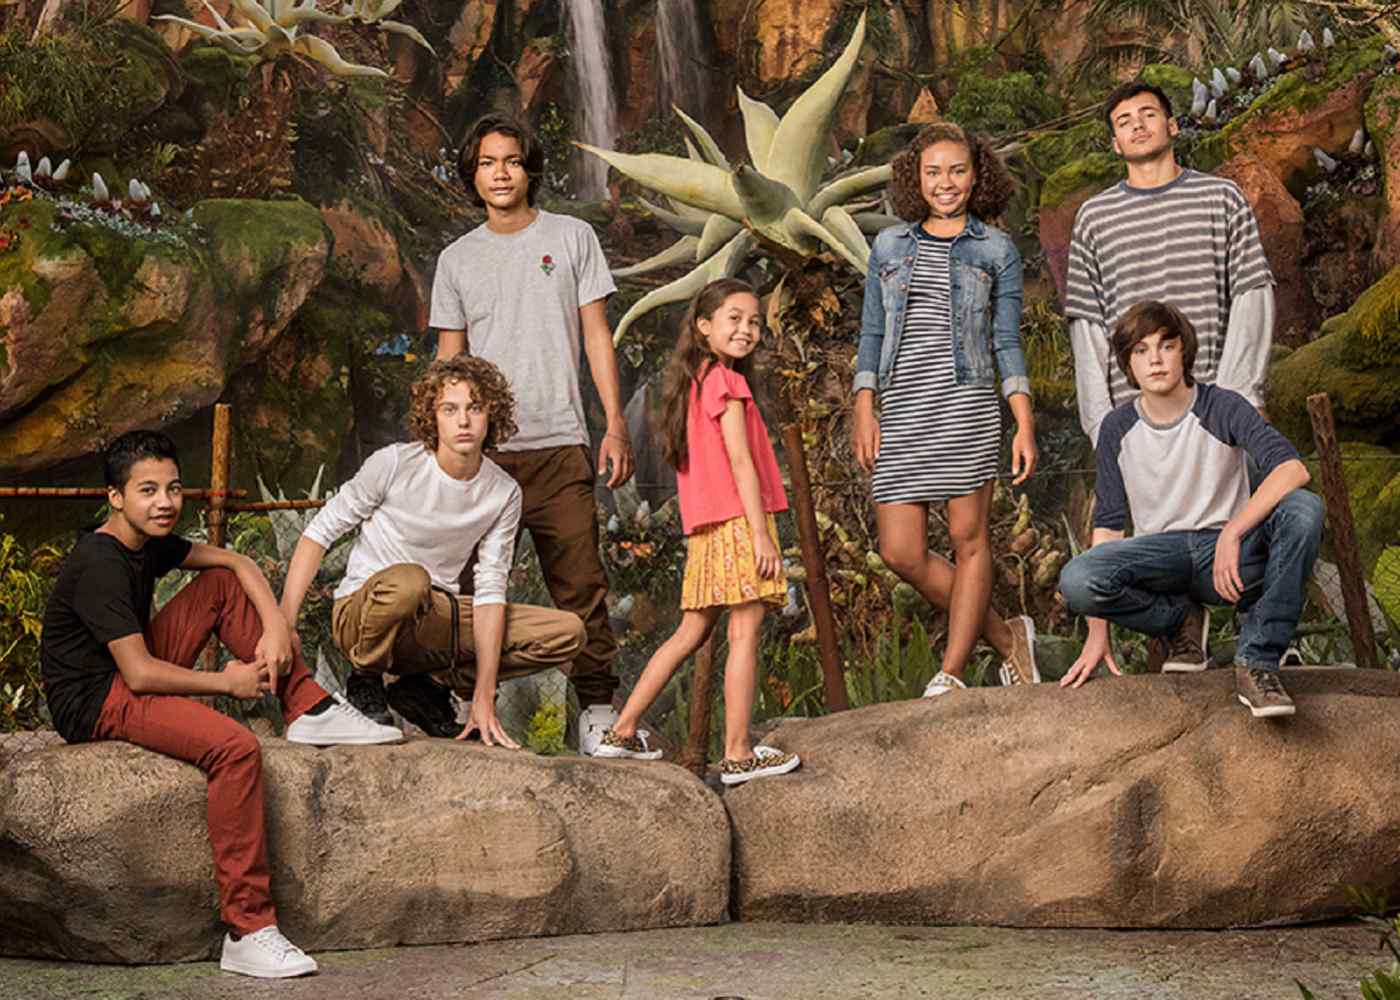 Meet the New Avatar Kids in Cast Photo